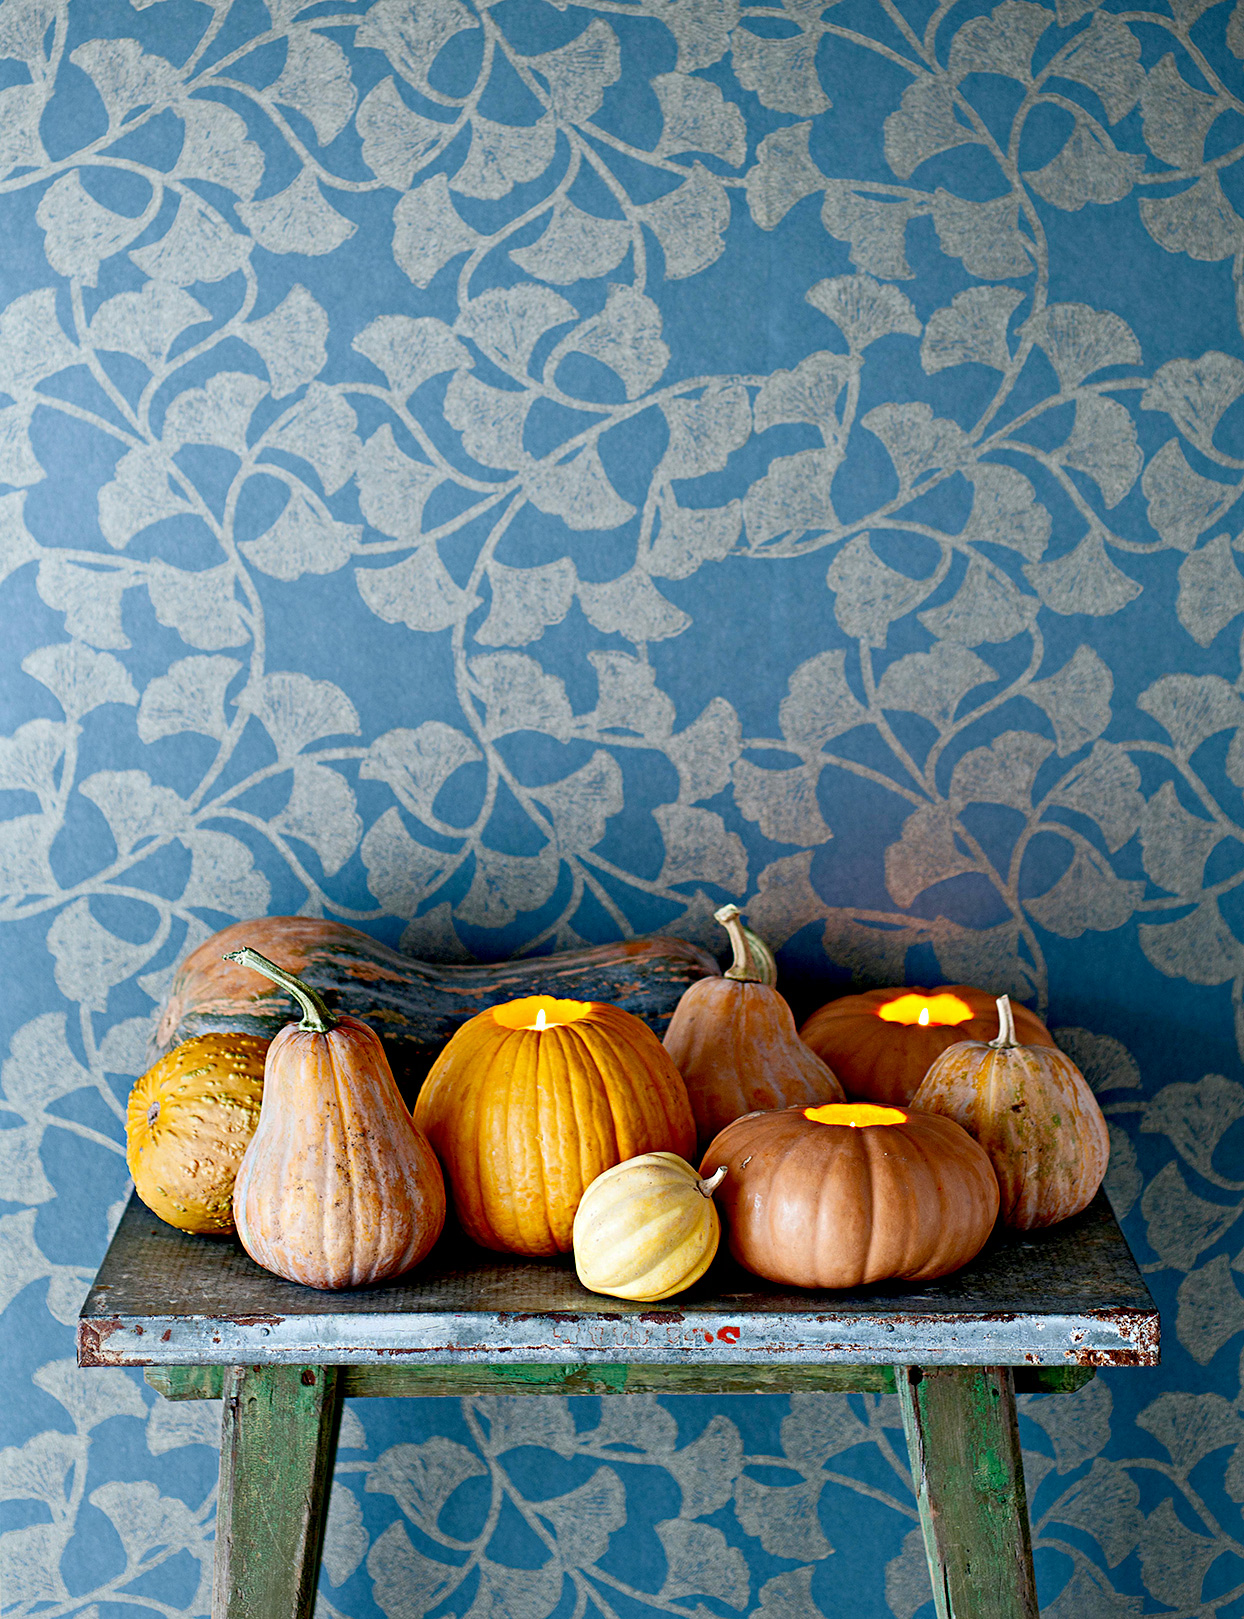 Pumpkins and gourds on table with candles inside